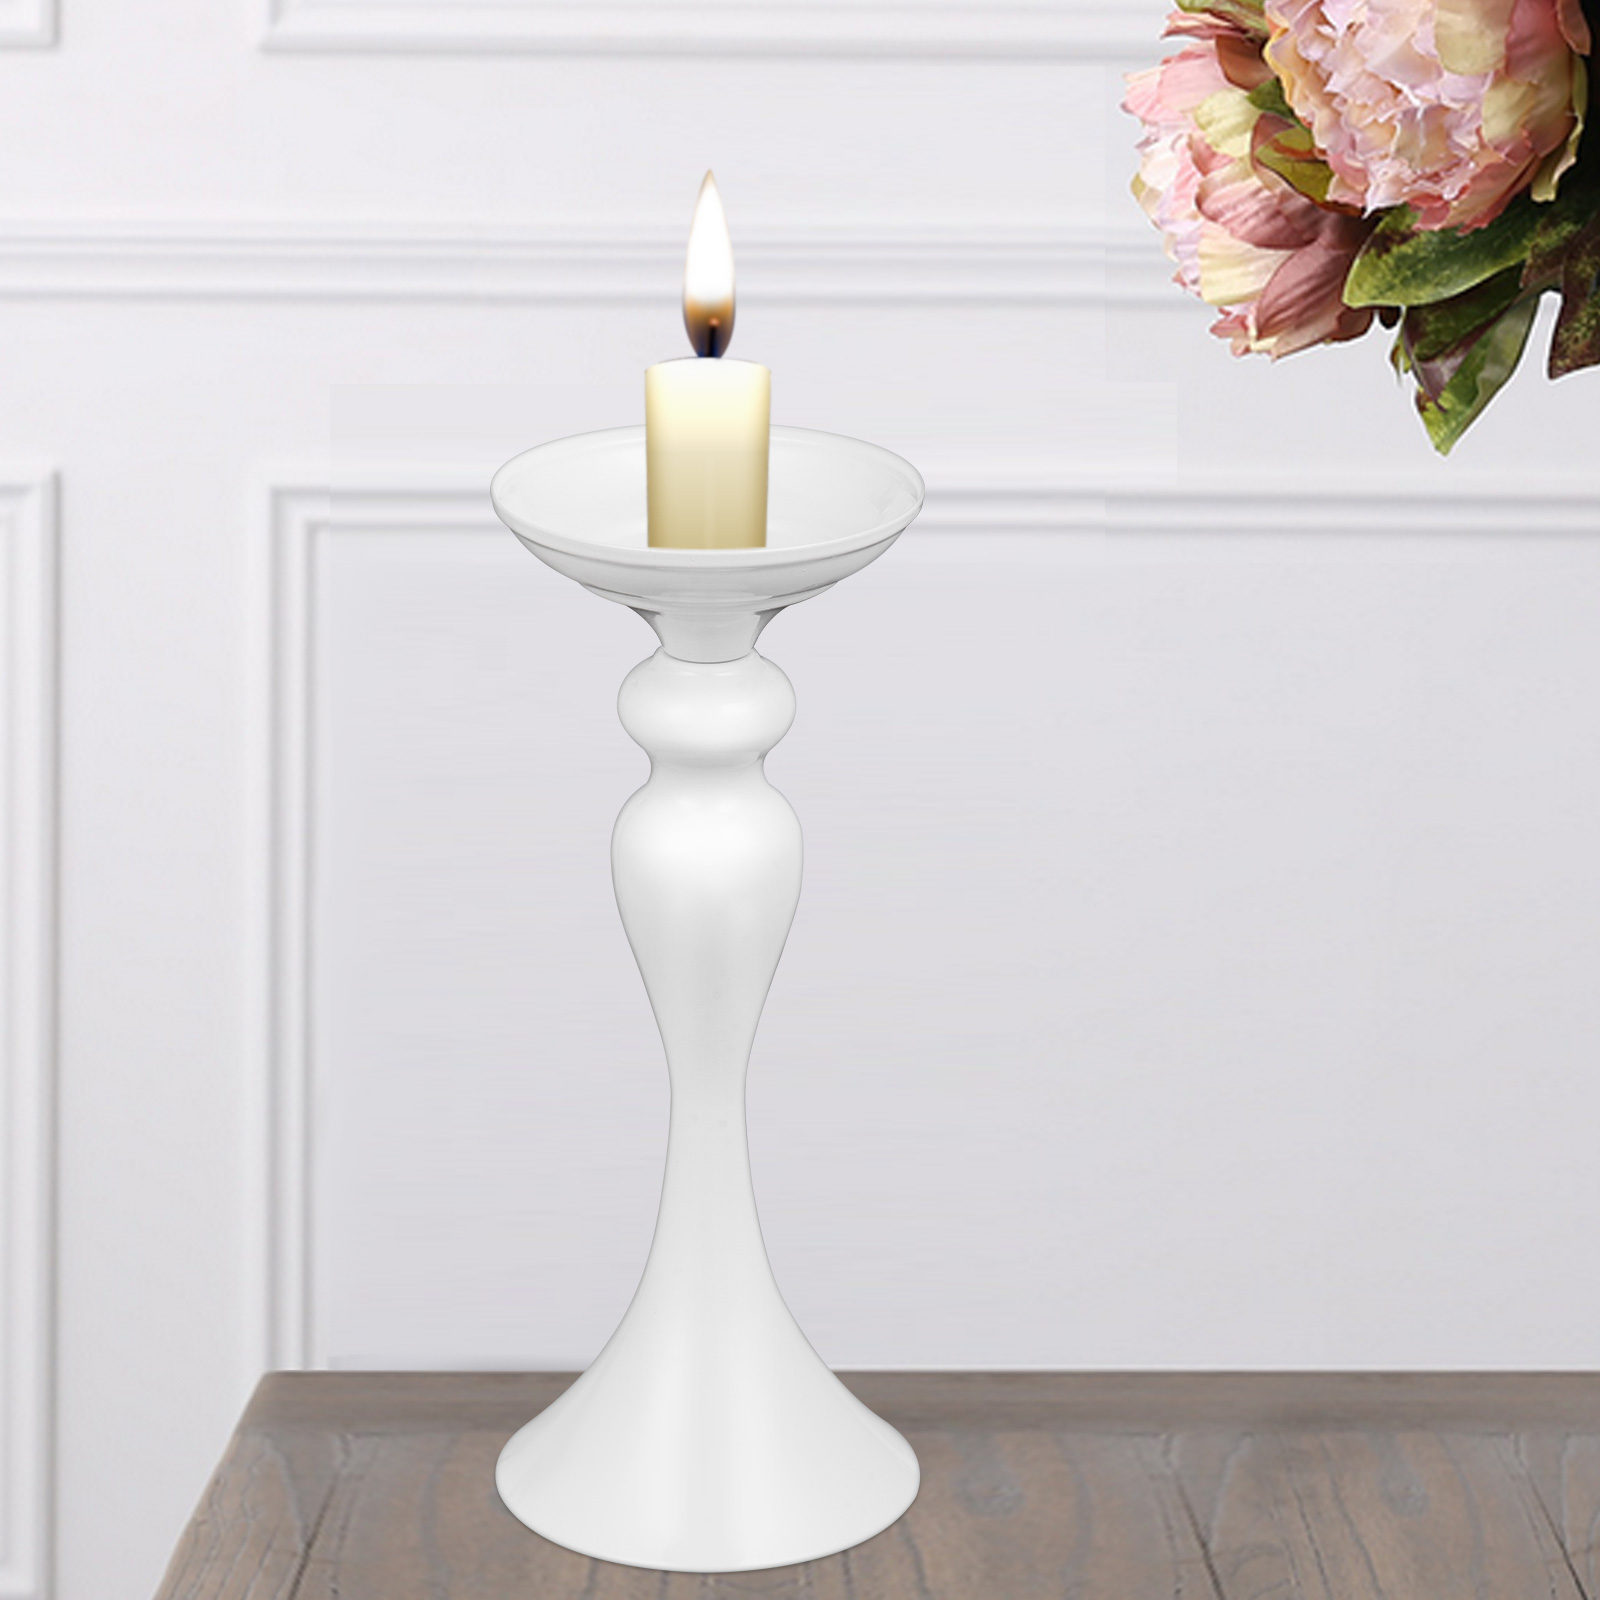 Flower-Rack-for-Wedding-Metal-Candle-Stand-4-11pcs-Centerpiece-Flower-Vase thumbnail 214